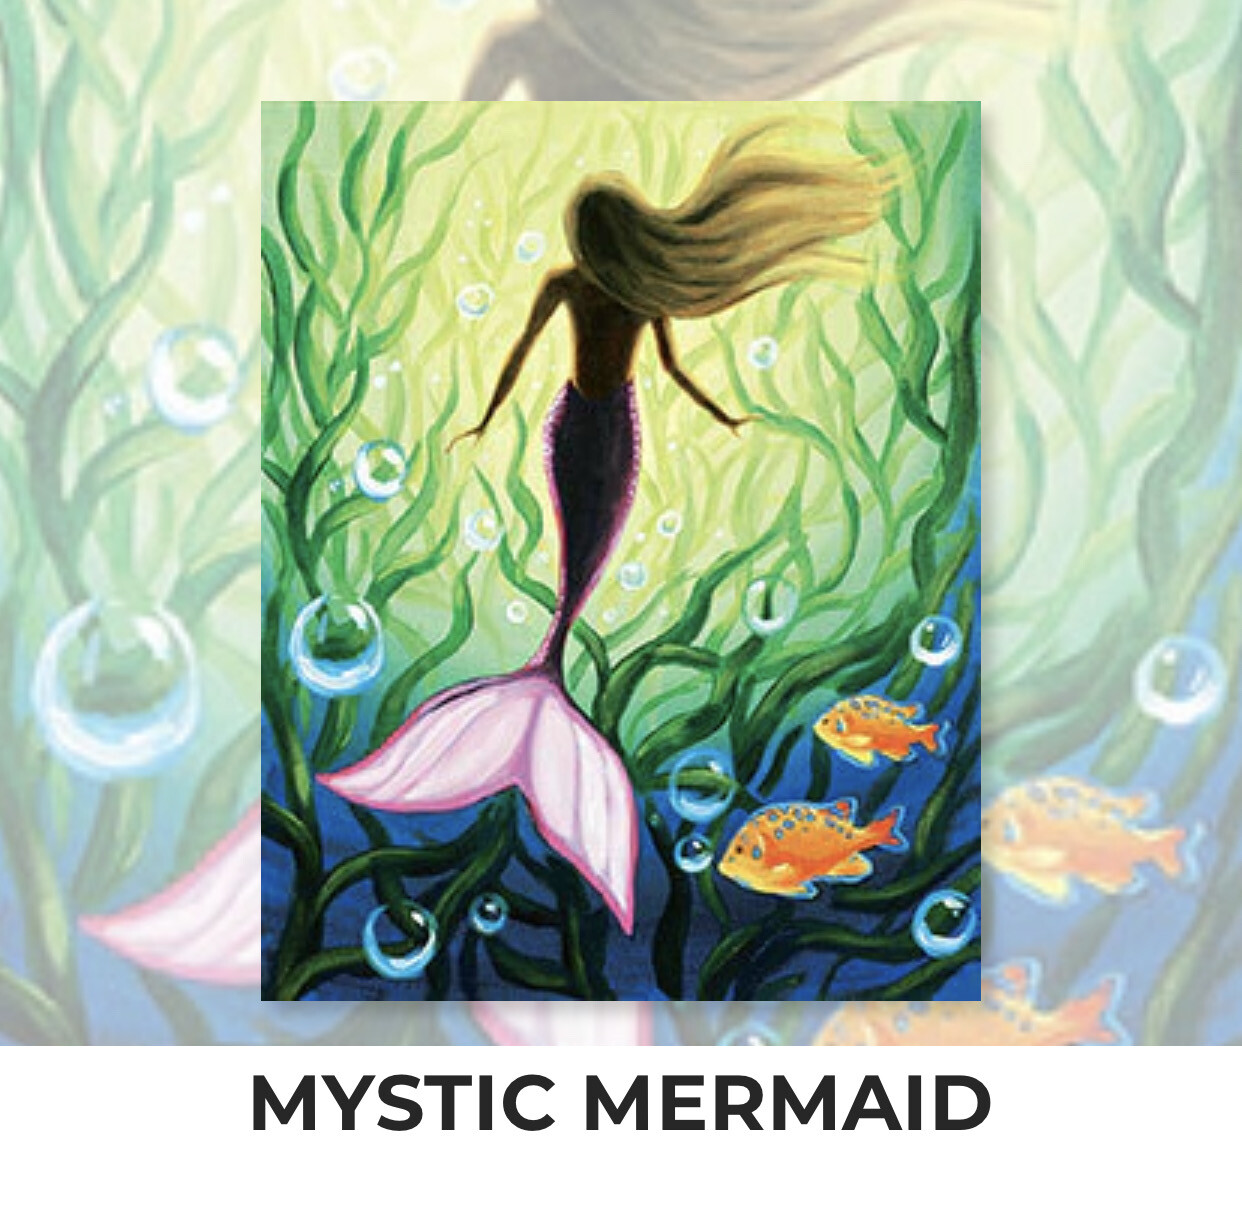 MYSTIC MERMAID - Zoom Paint and Sip Night - Sunday, August 15- 6-8pm - Order By July 31 - Reservation For One Adult